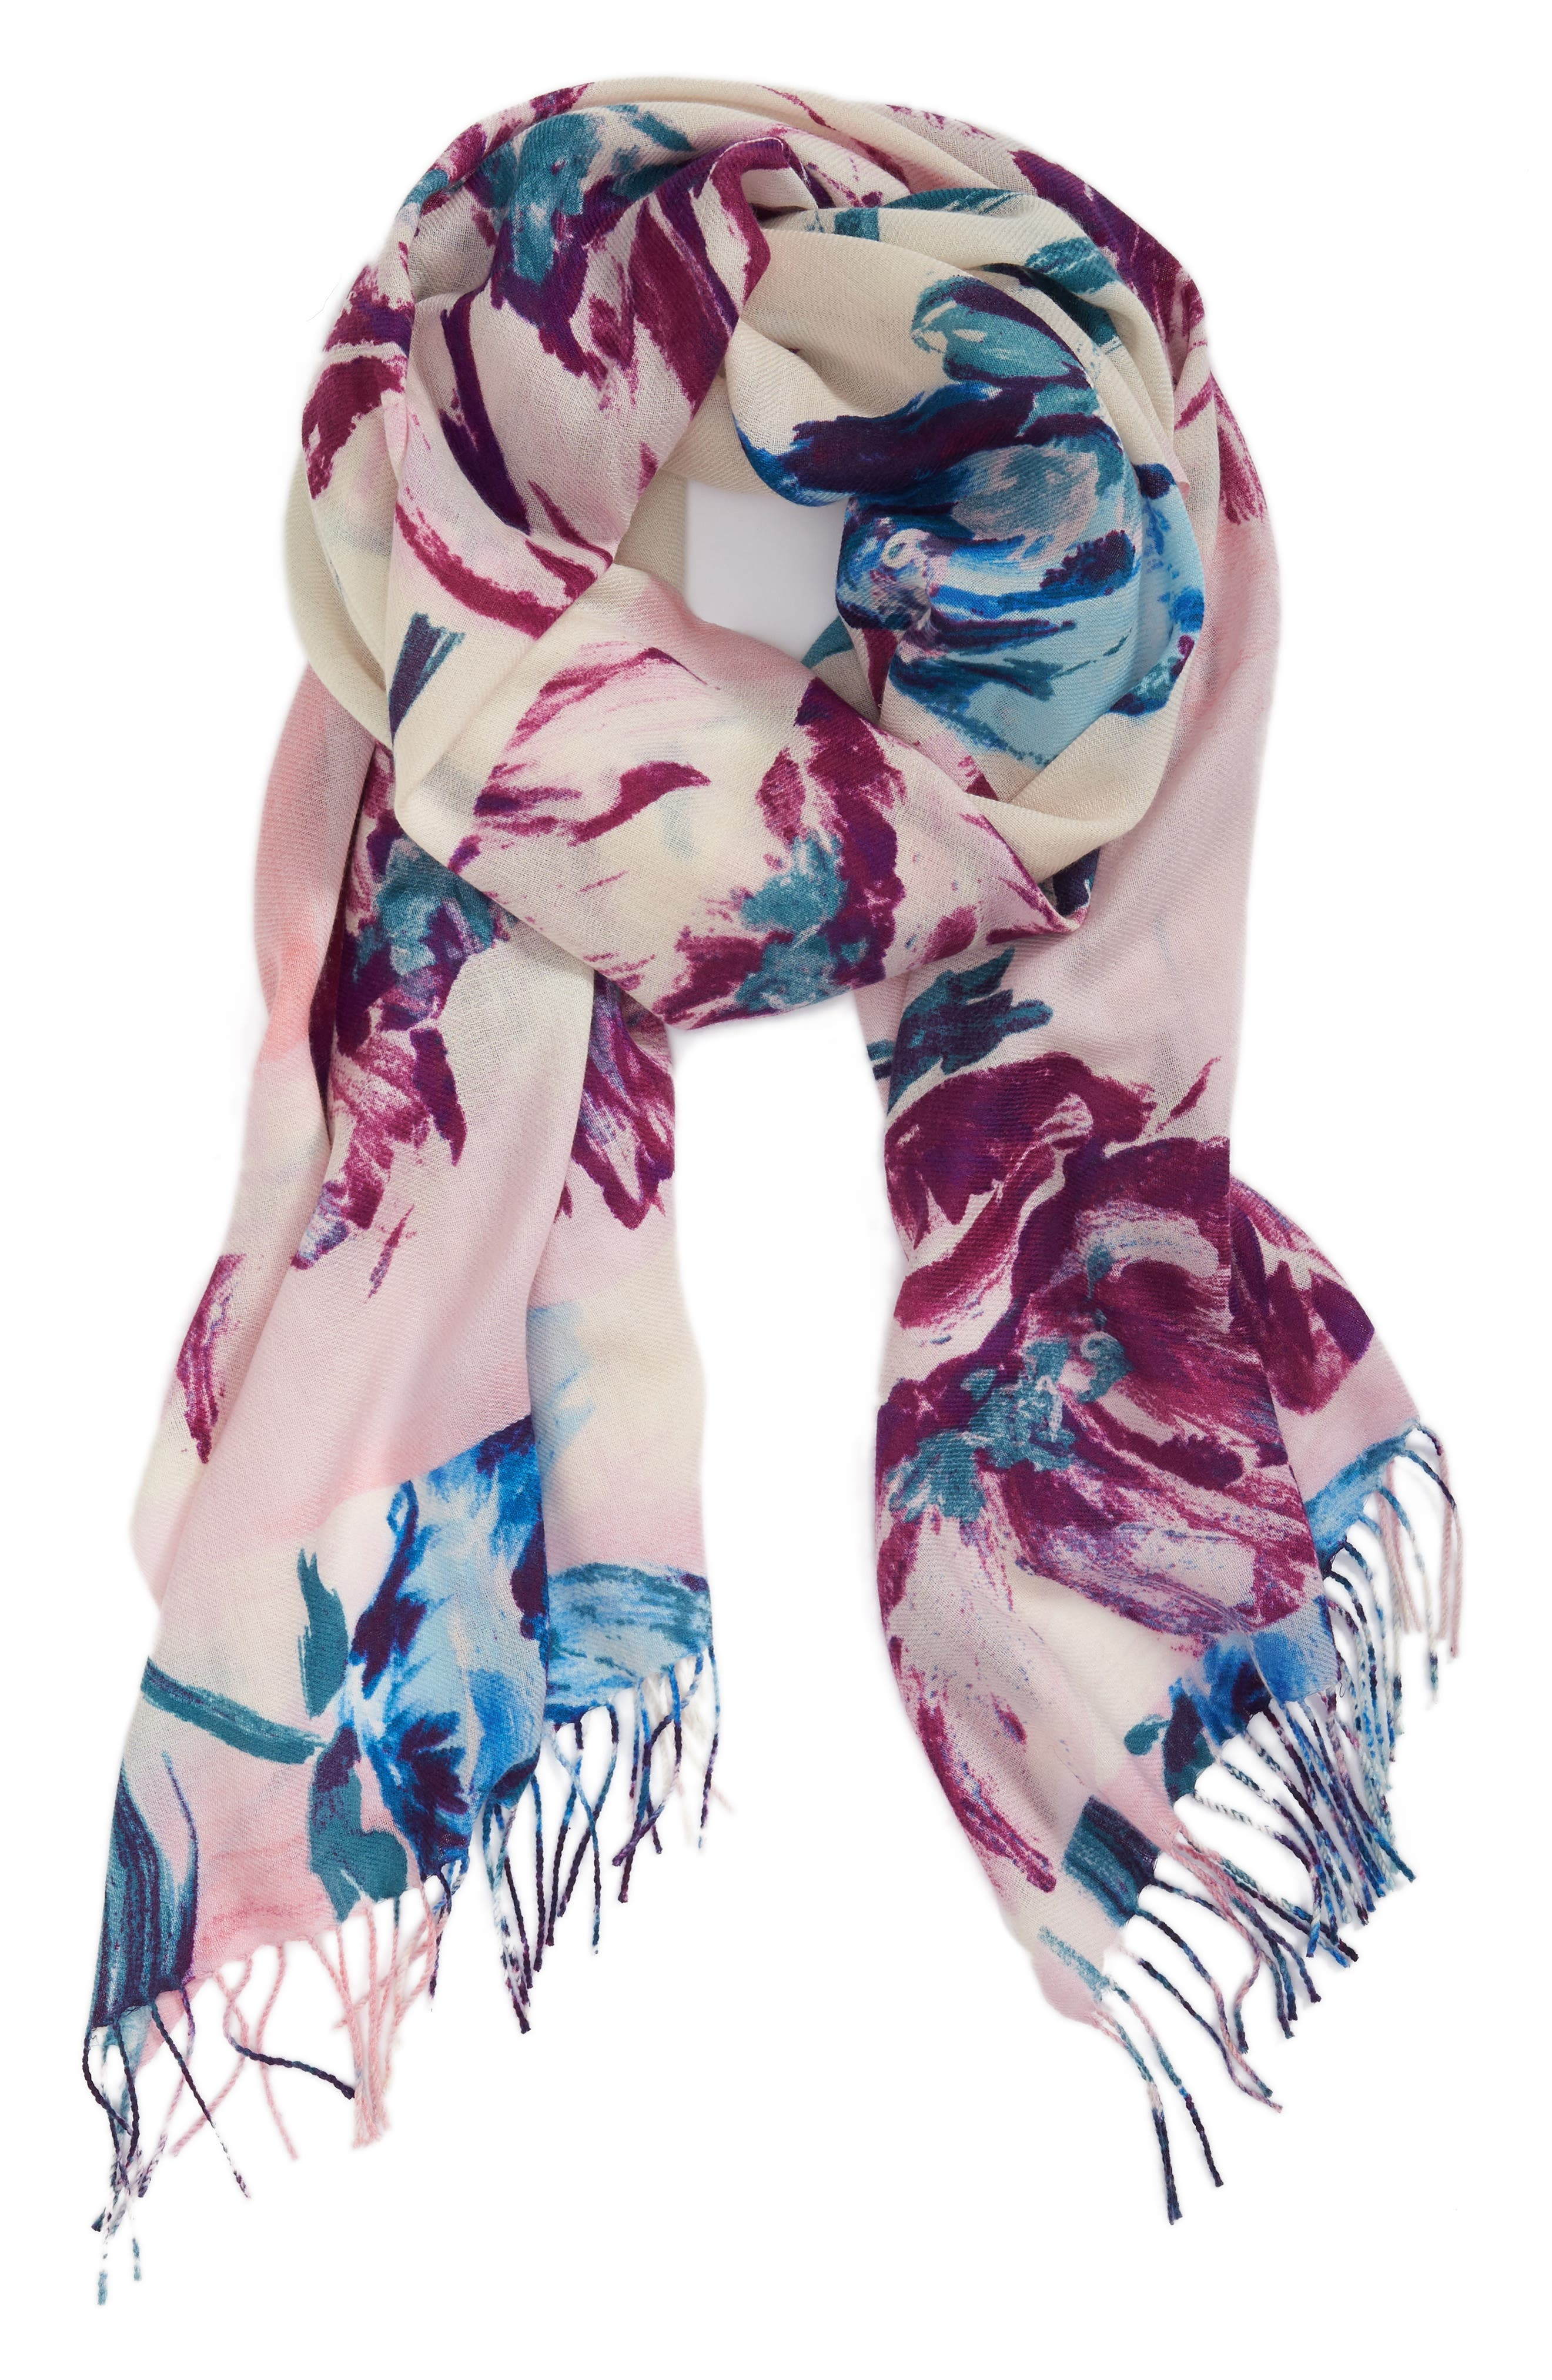 Tissue Print Wool & Cashmere Wrap Scarf,                             Alternate thumbnail 2, color,                             Pink Abstract Still Life